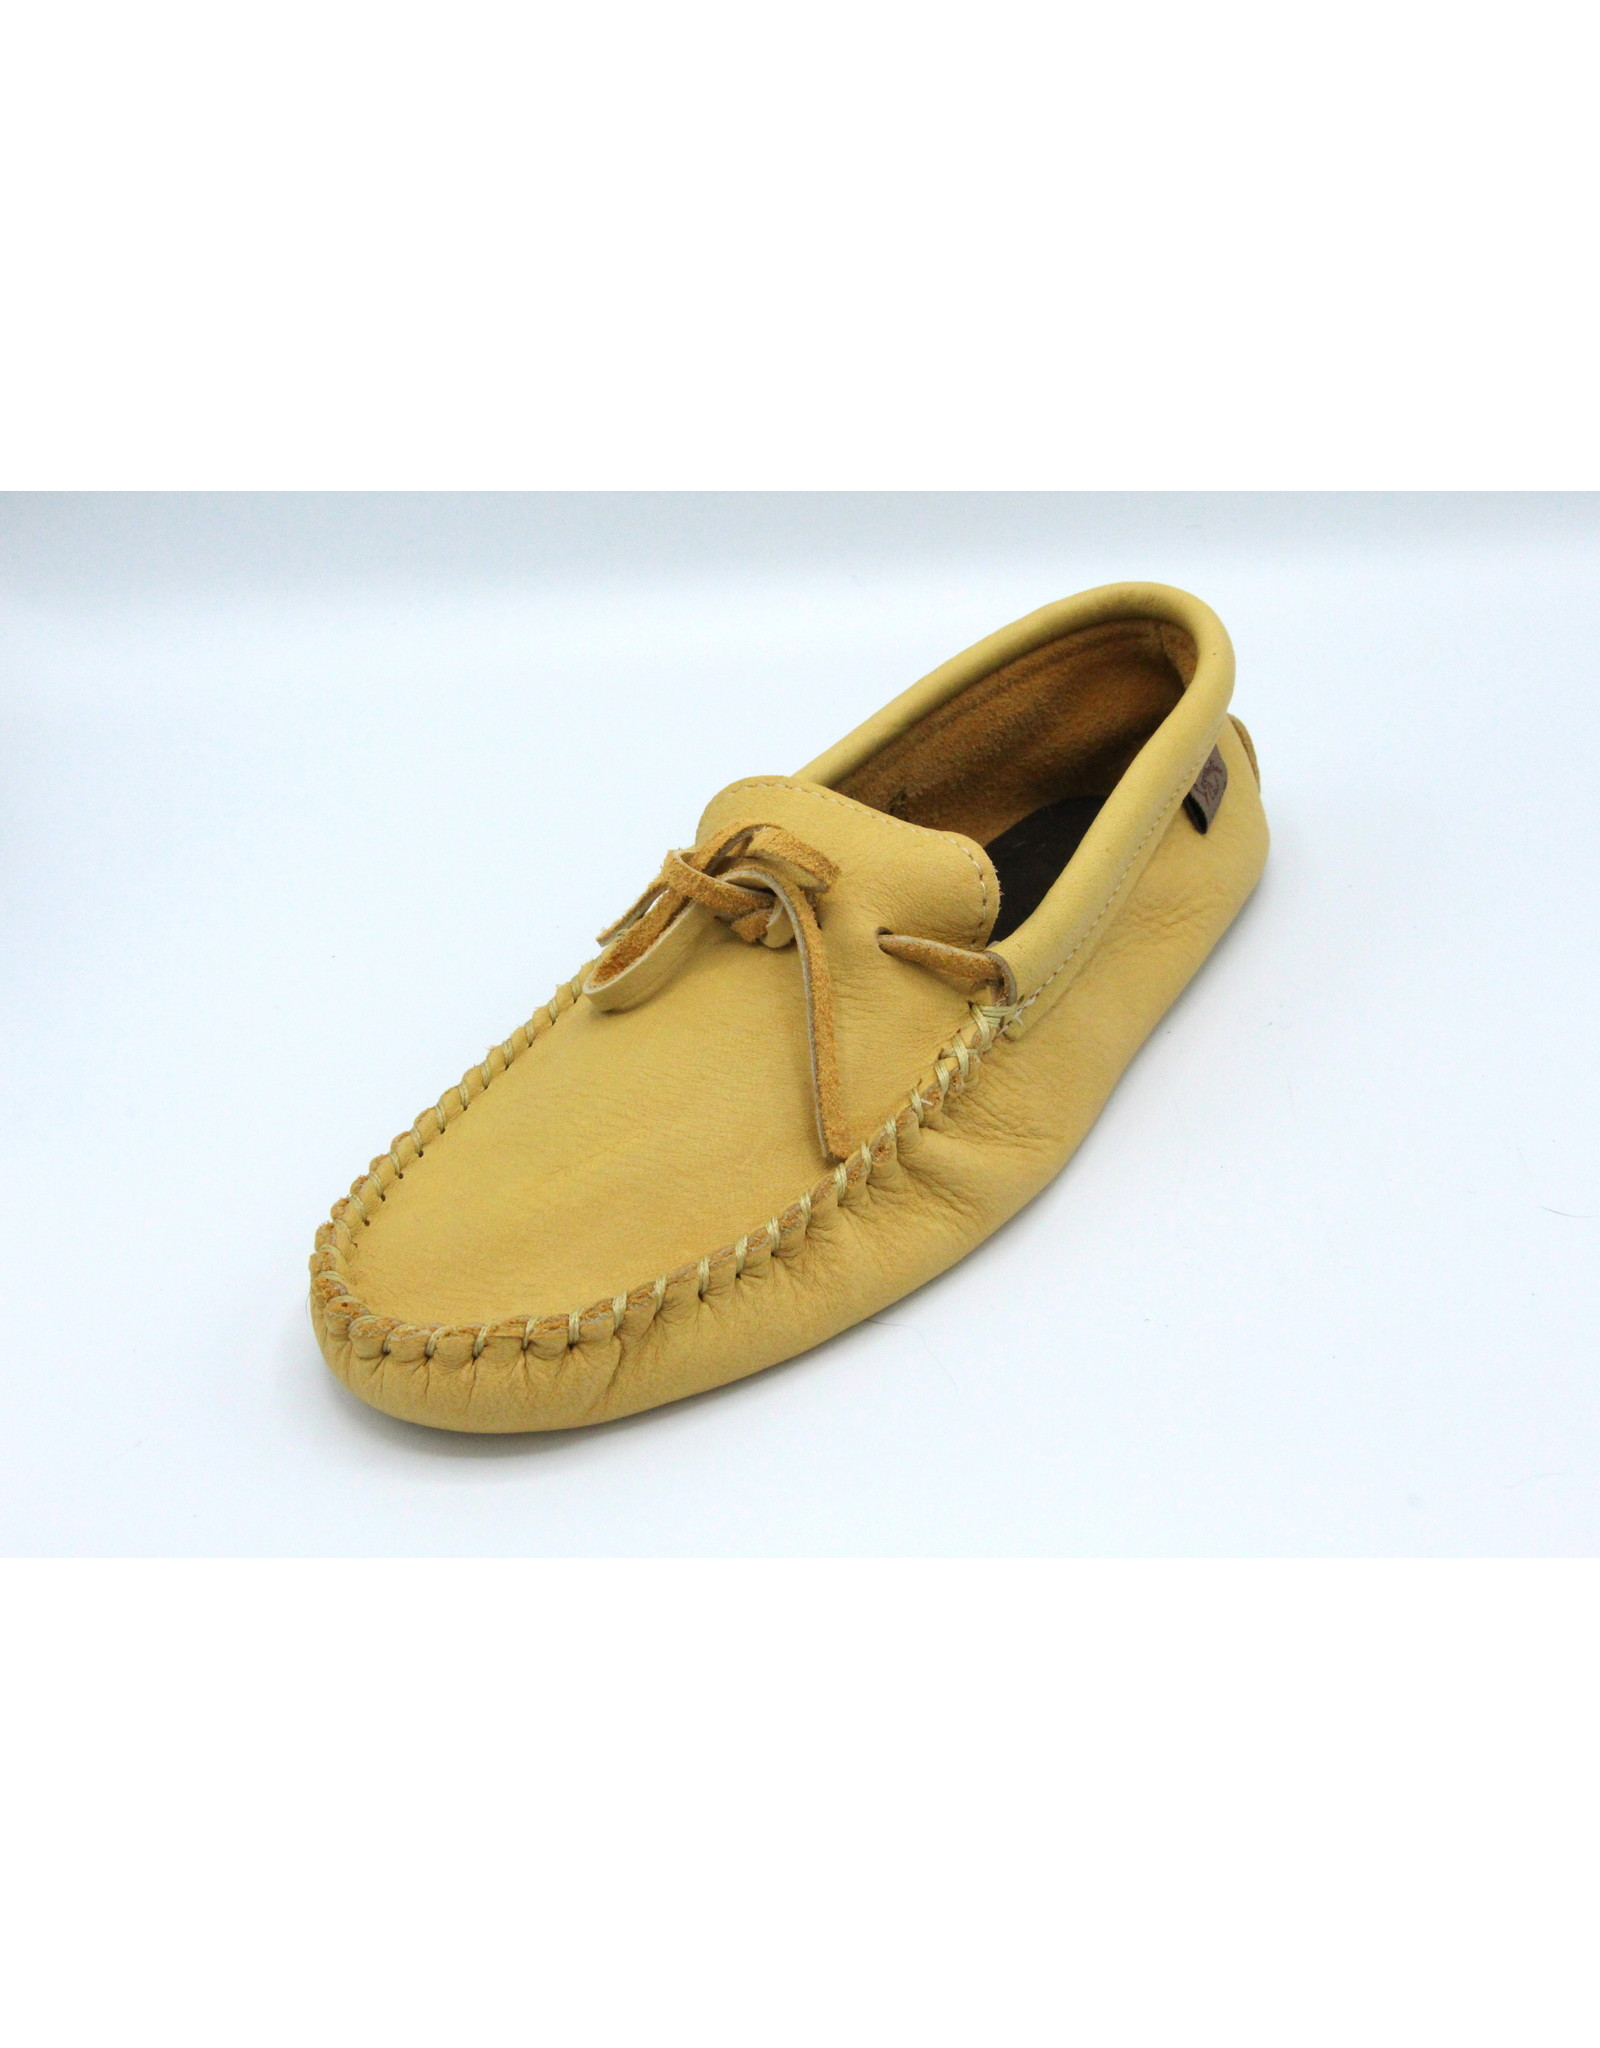 Men's Natural Moose Hide Moccasin  - 126M